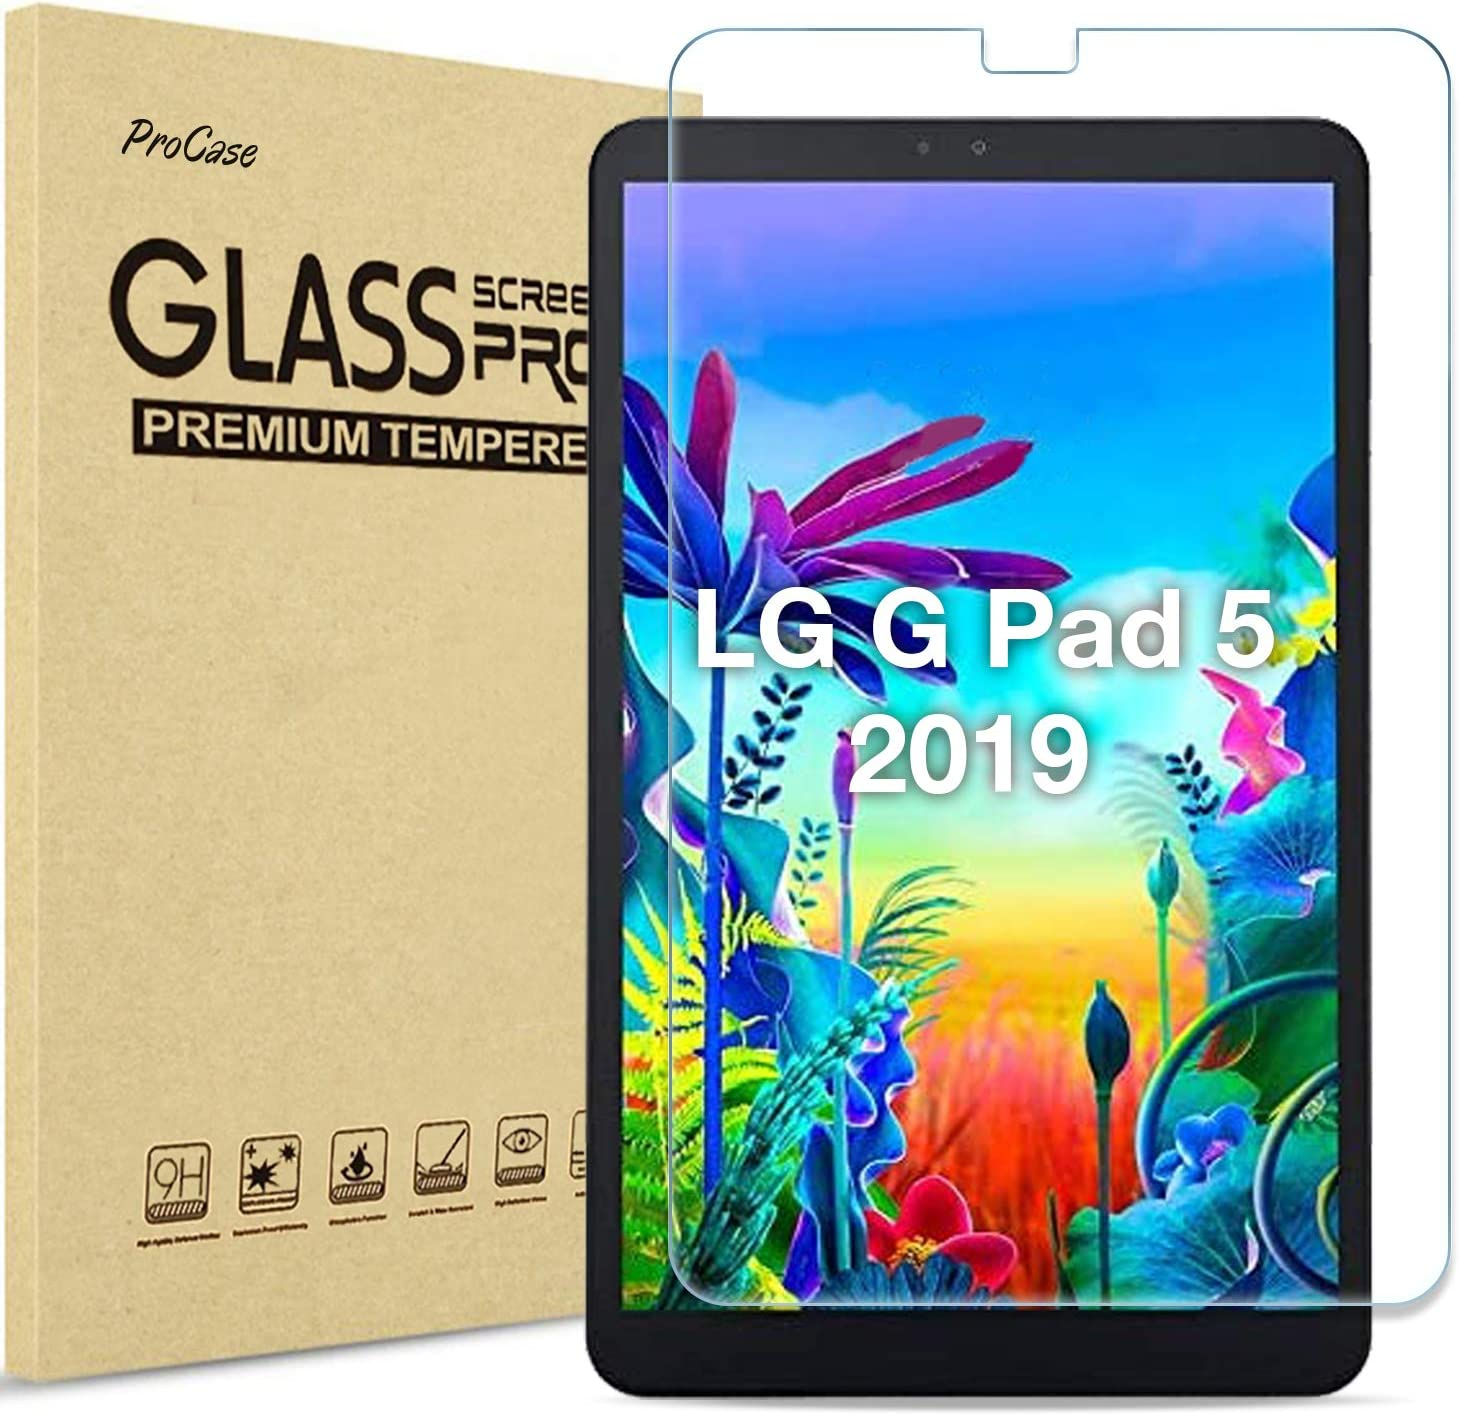 ProCase LG G Pad 5 10.1 Screen Protector 2019, Tempered Glass Screen Film Guard Screen Protector for 10.1 inch LG G Pad 5 2019 -Clear